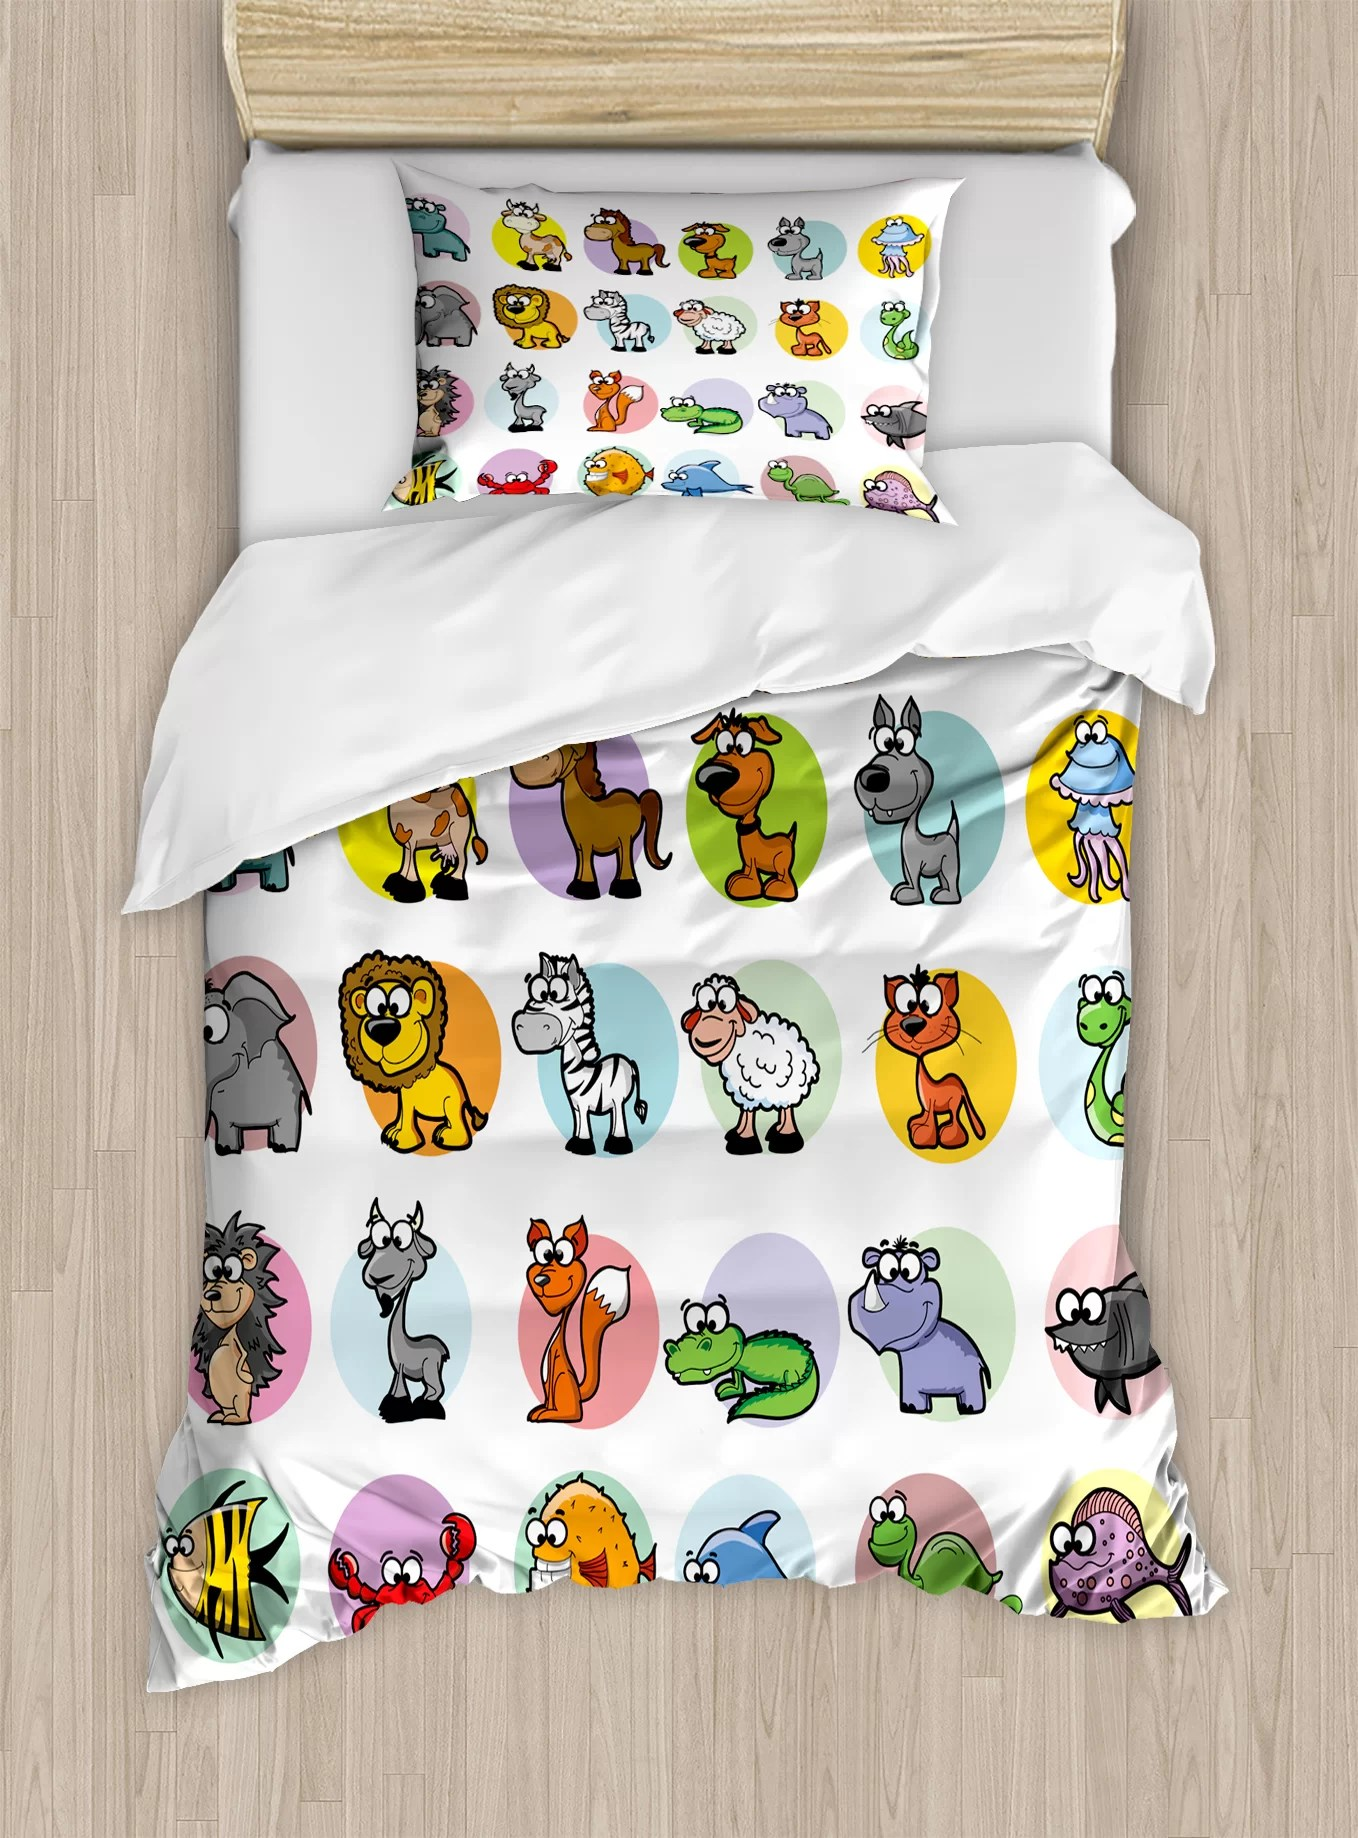 Funny Duvet Covers Funny Cute Cartoon Style Animals Set Colorful Dots Doodle Jungle Life Kids Room Decor Duvet Cover Set